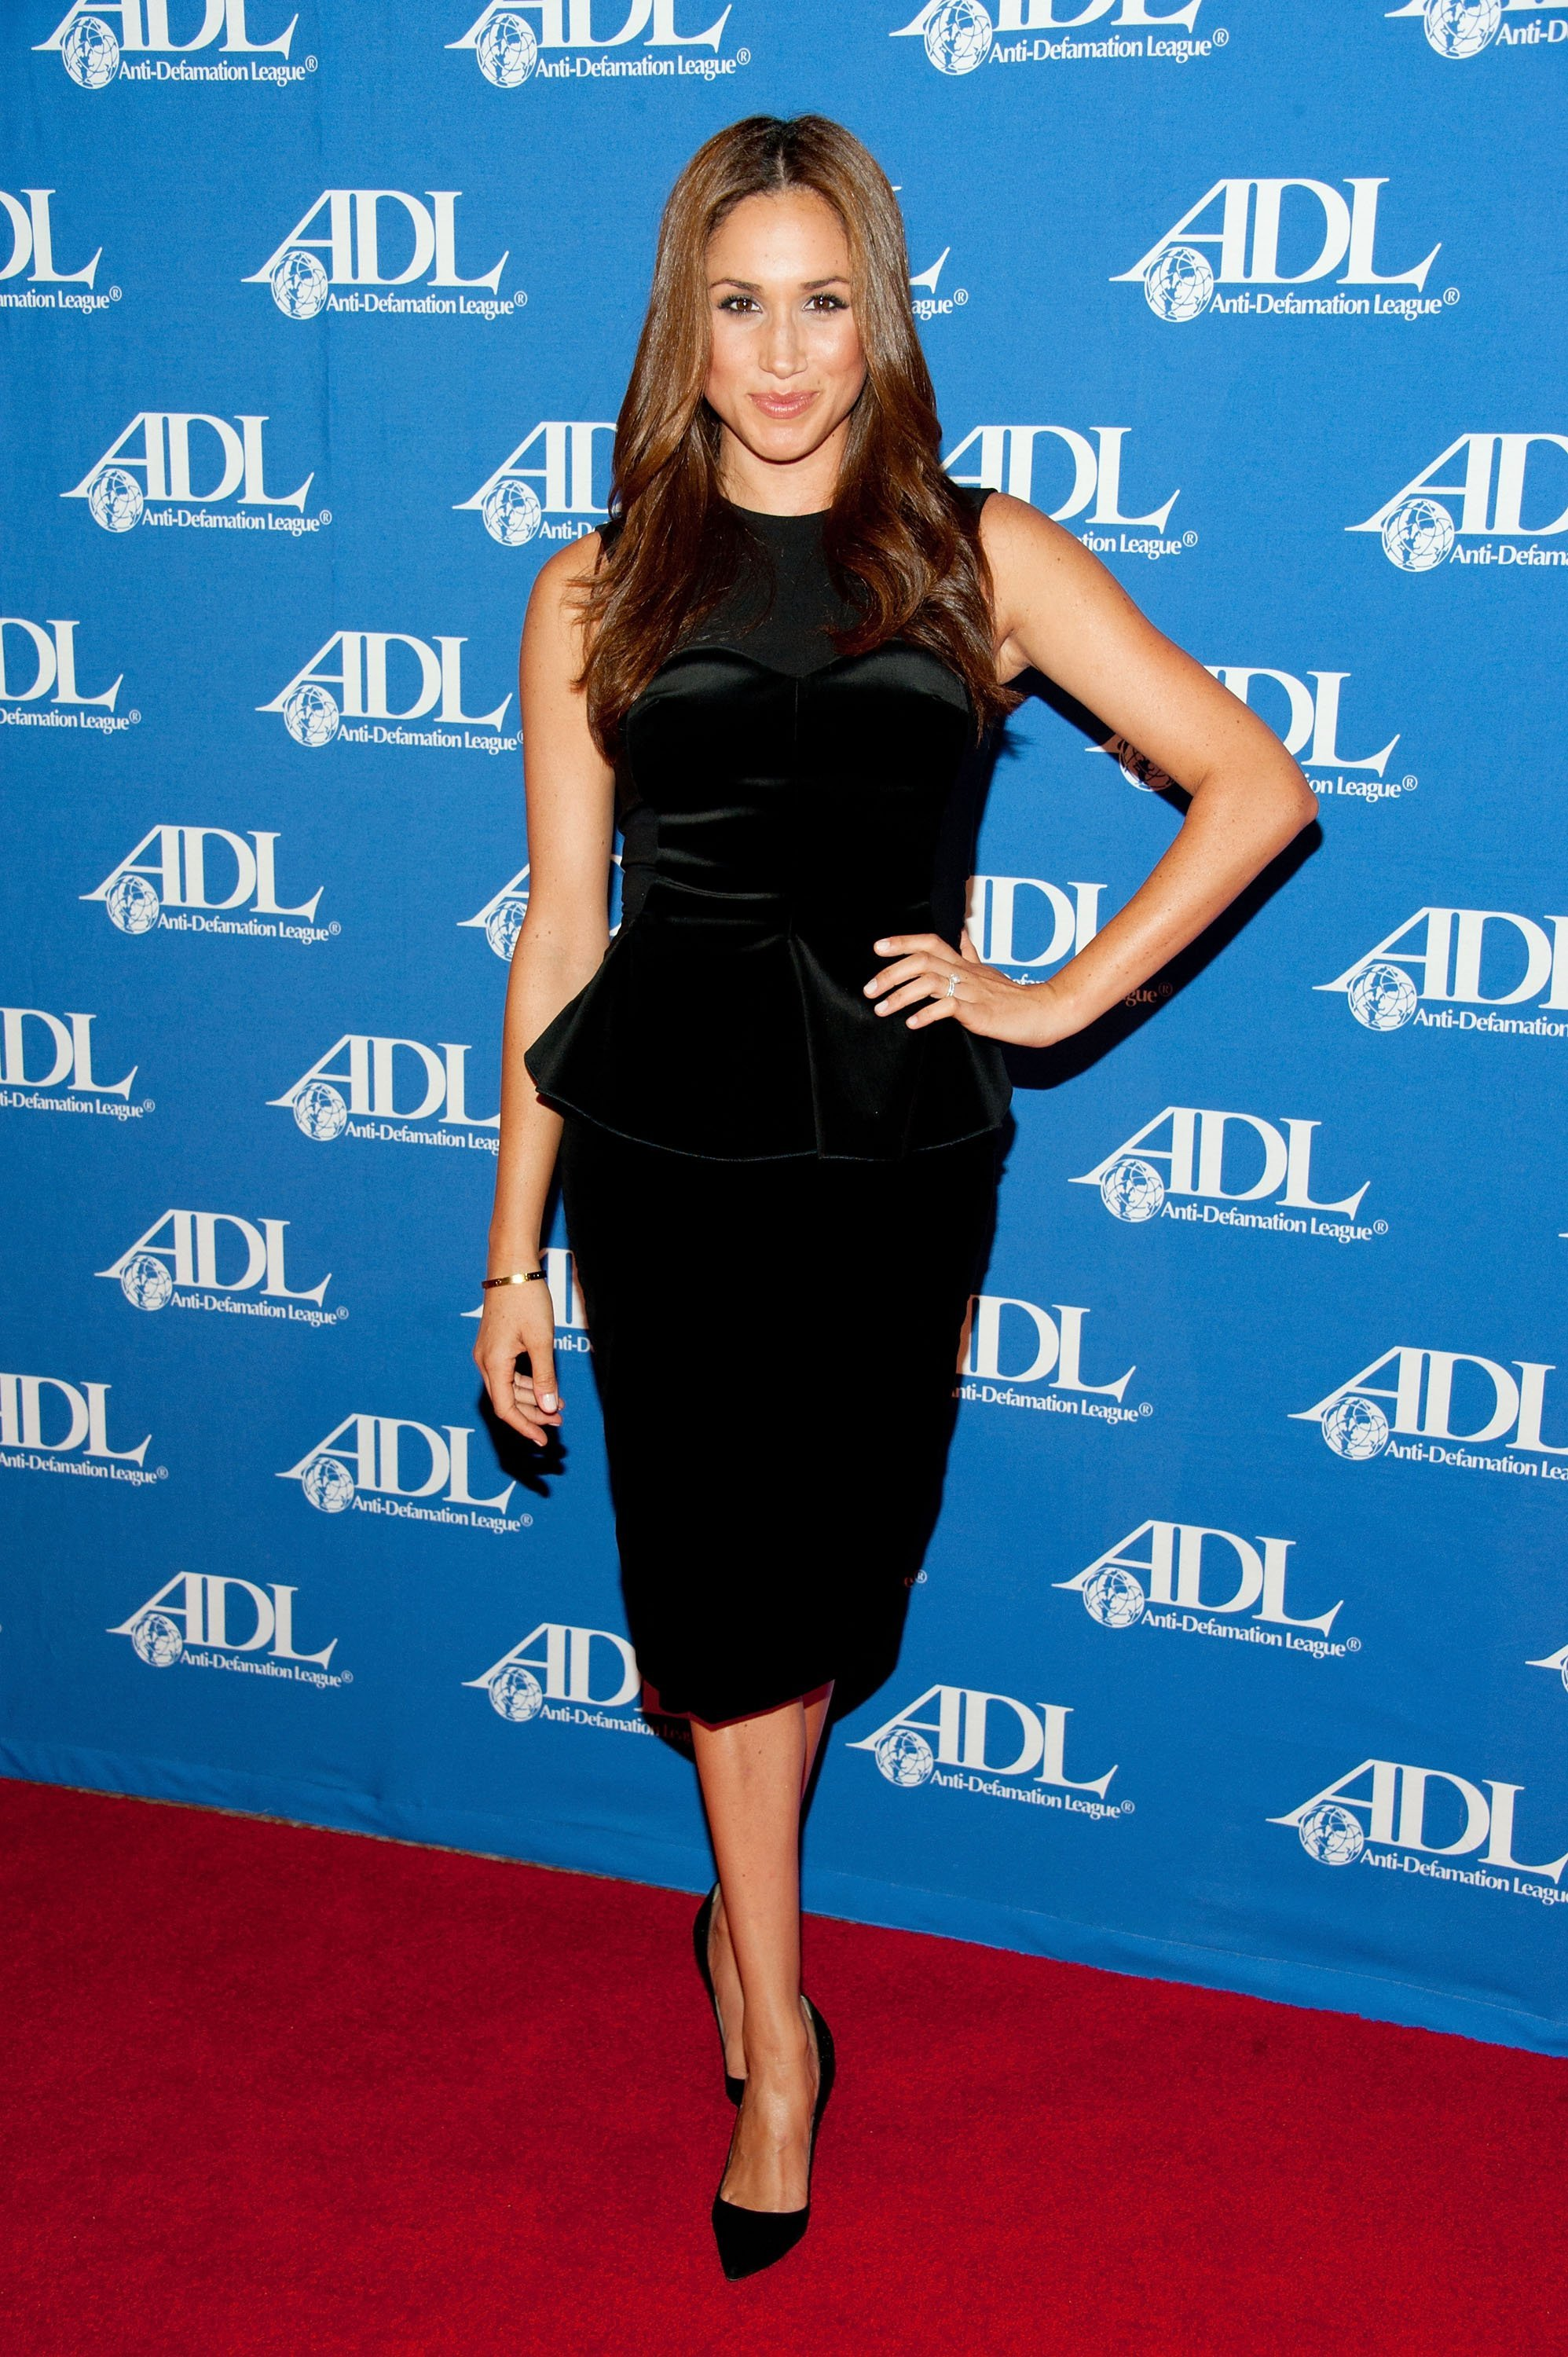 Meghan Markle arrives at the Anti-Defamation League Entertainment Industry Awards Dinner at the Beverly Hilton on October 11, 2011, in Beverly Hills, California. | Source: Getty Images.